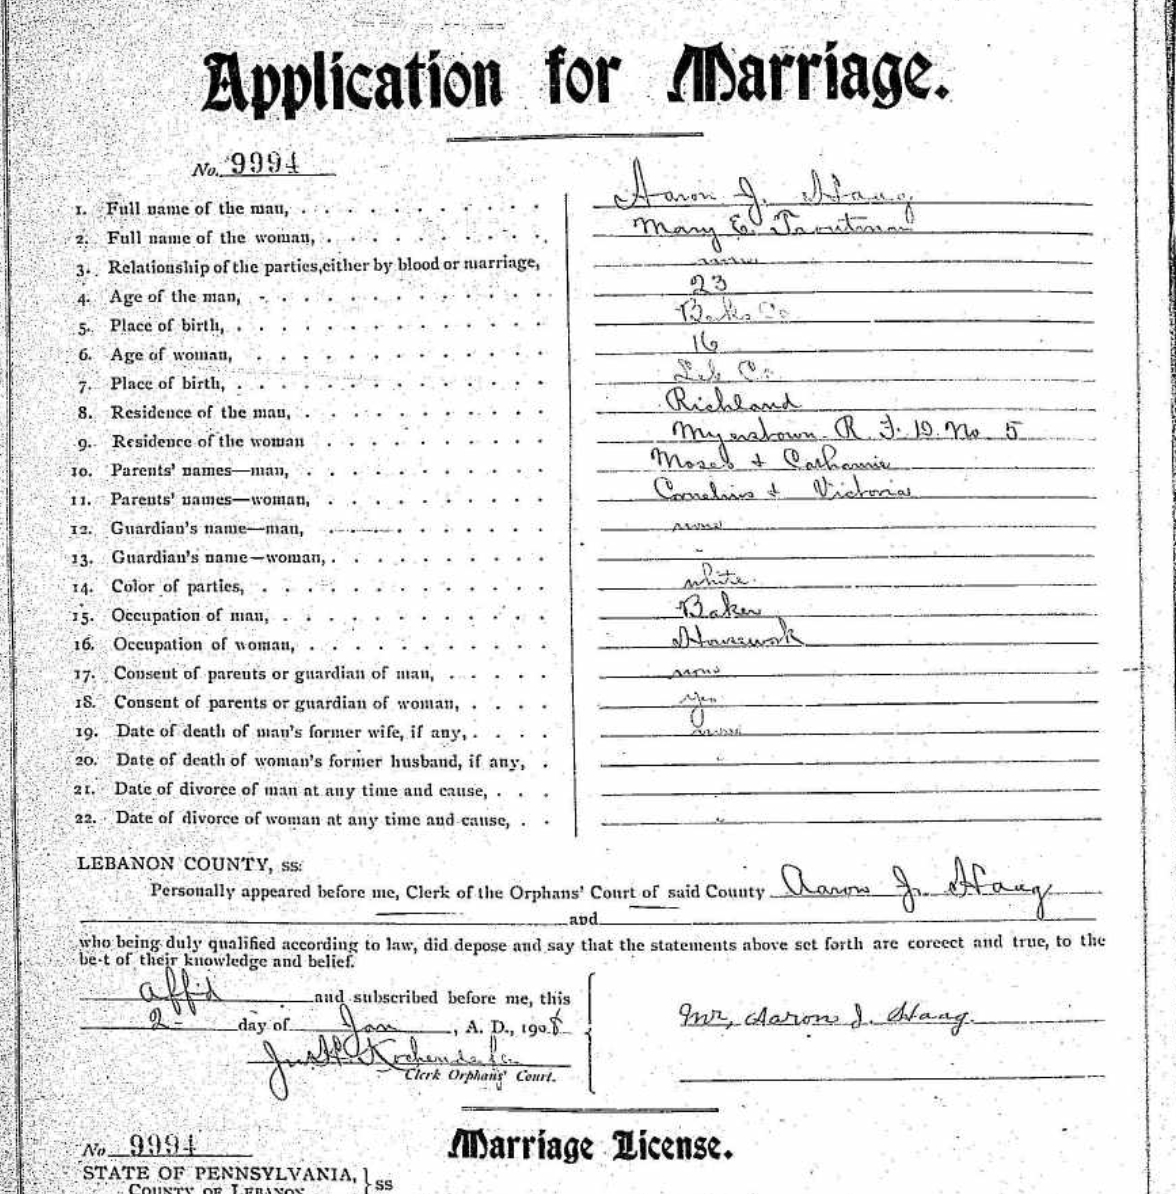 Mary's marriage application showing the misspelling of Haak as Haag